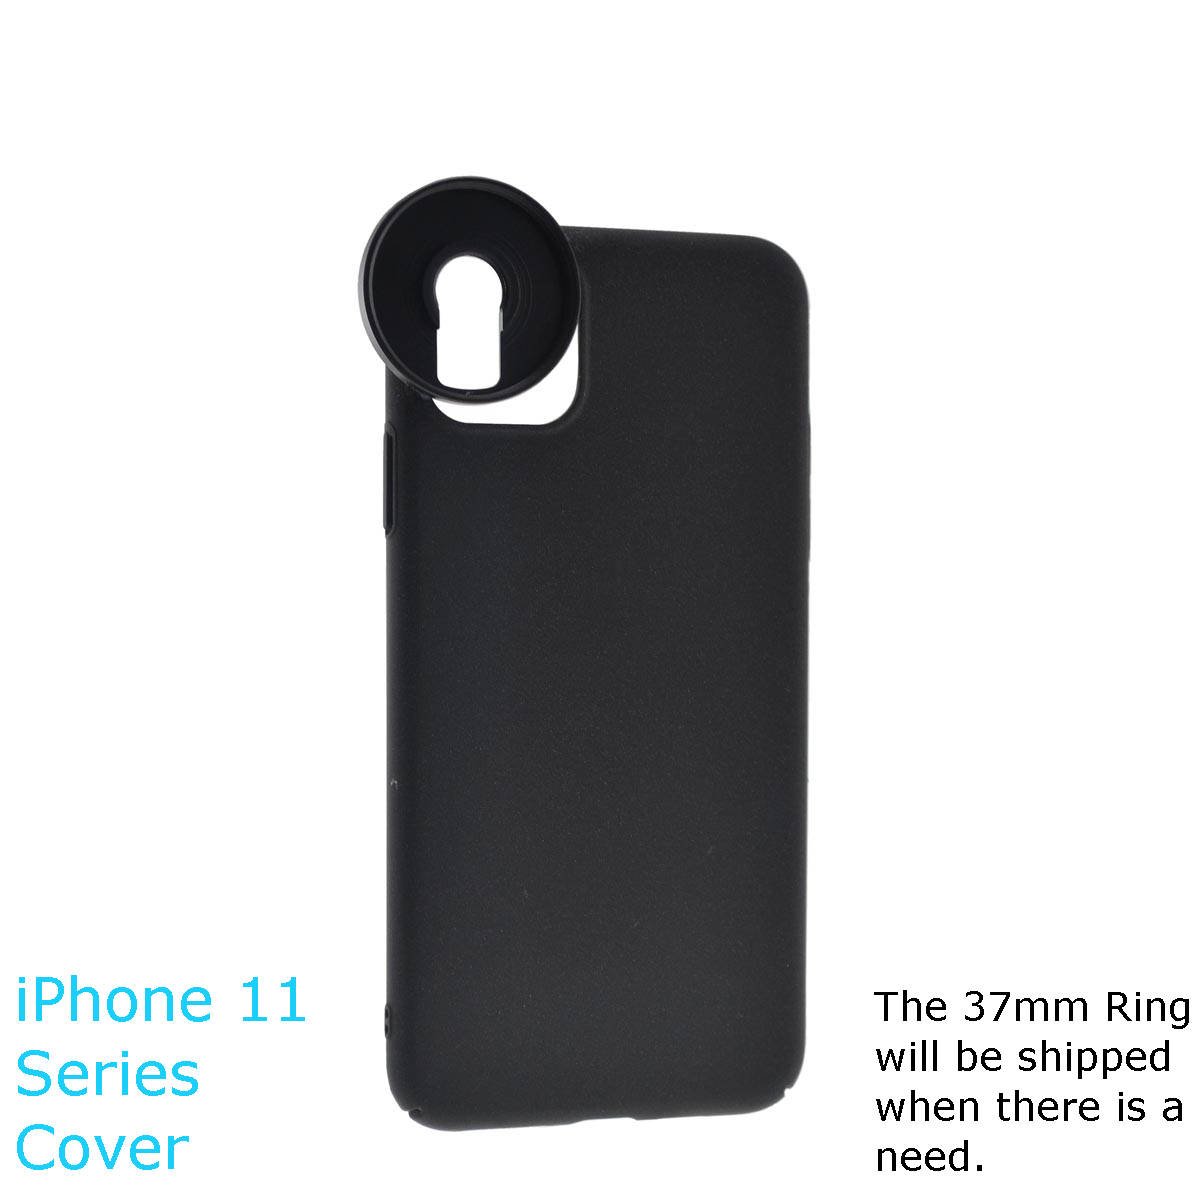 Custom iPhone case for Photography with 13.2mm add-on lenses